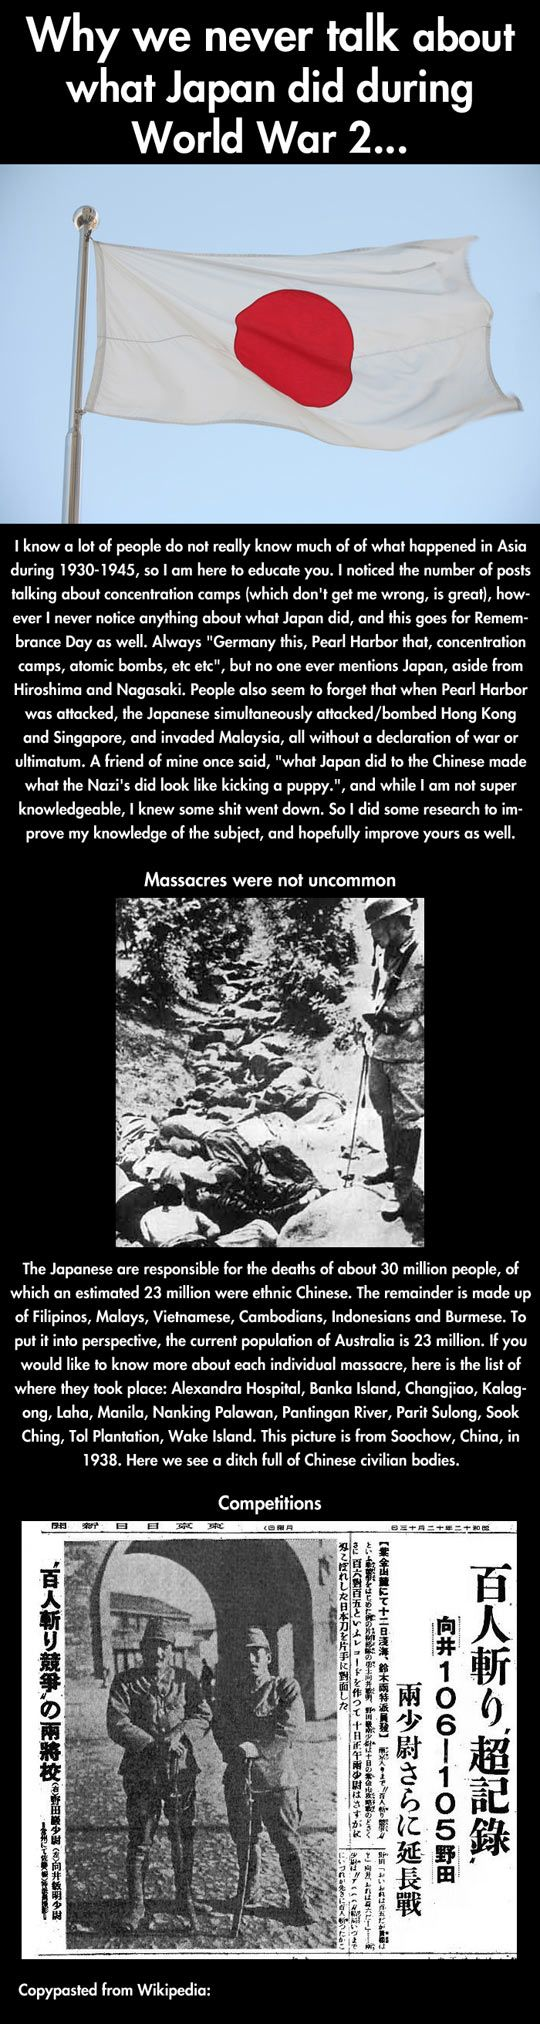 Japan War Crimes - WWII Unit